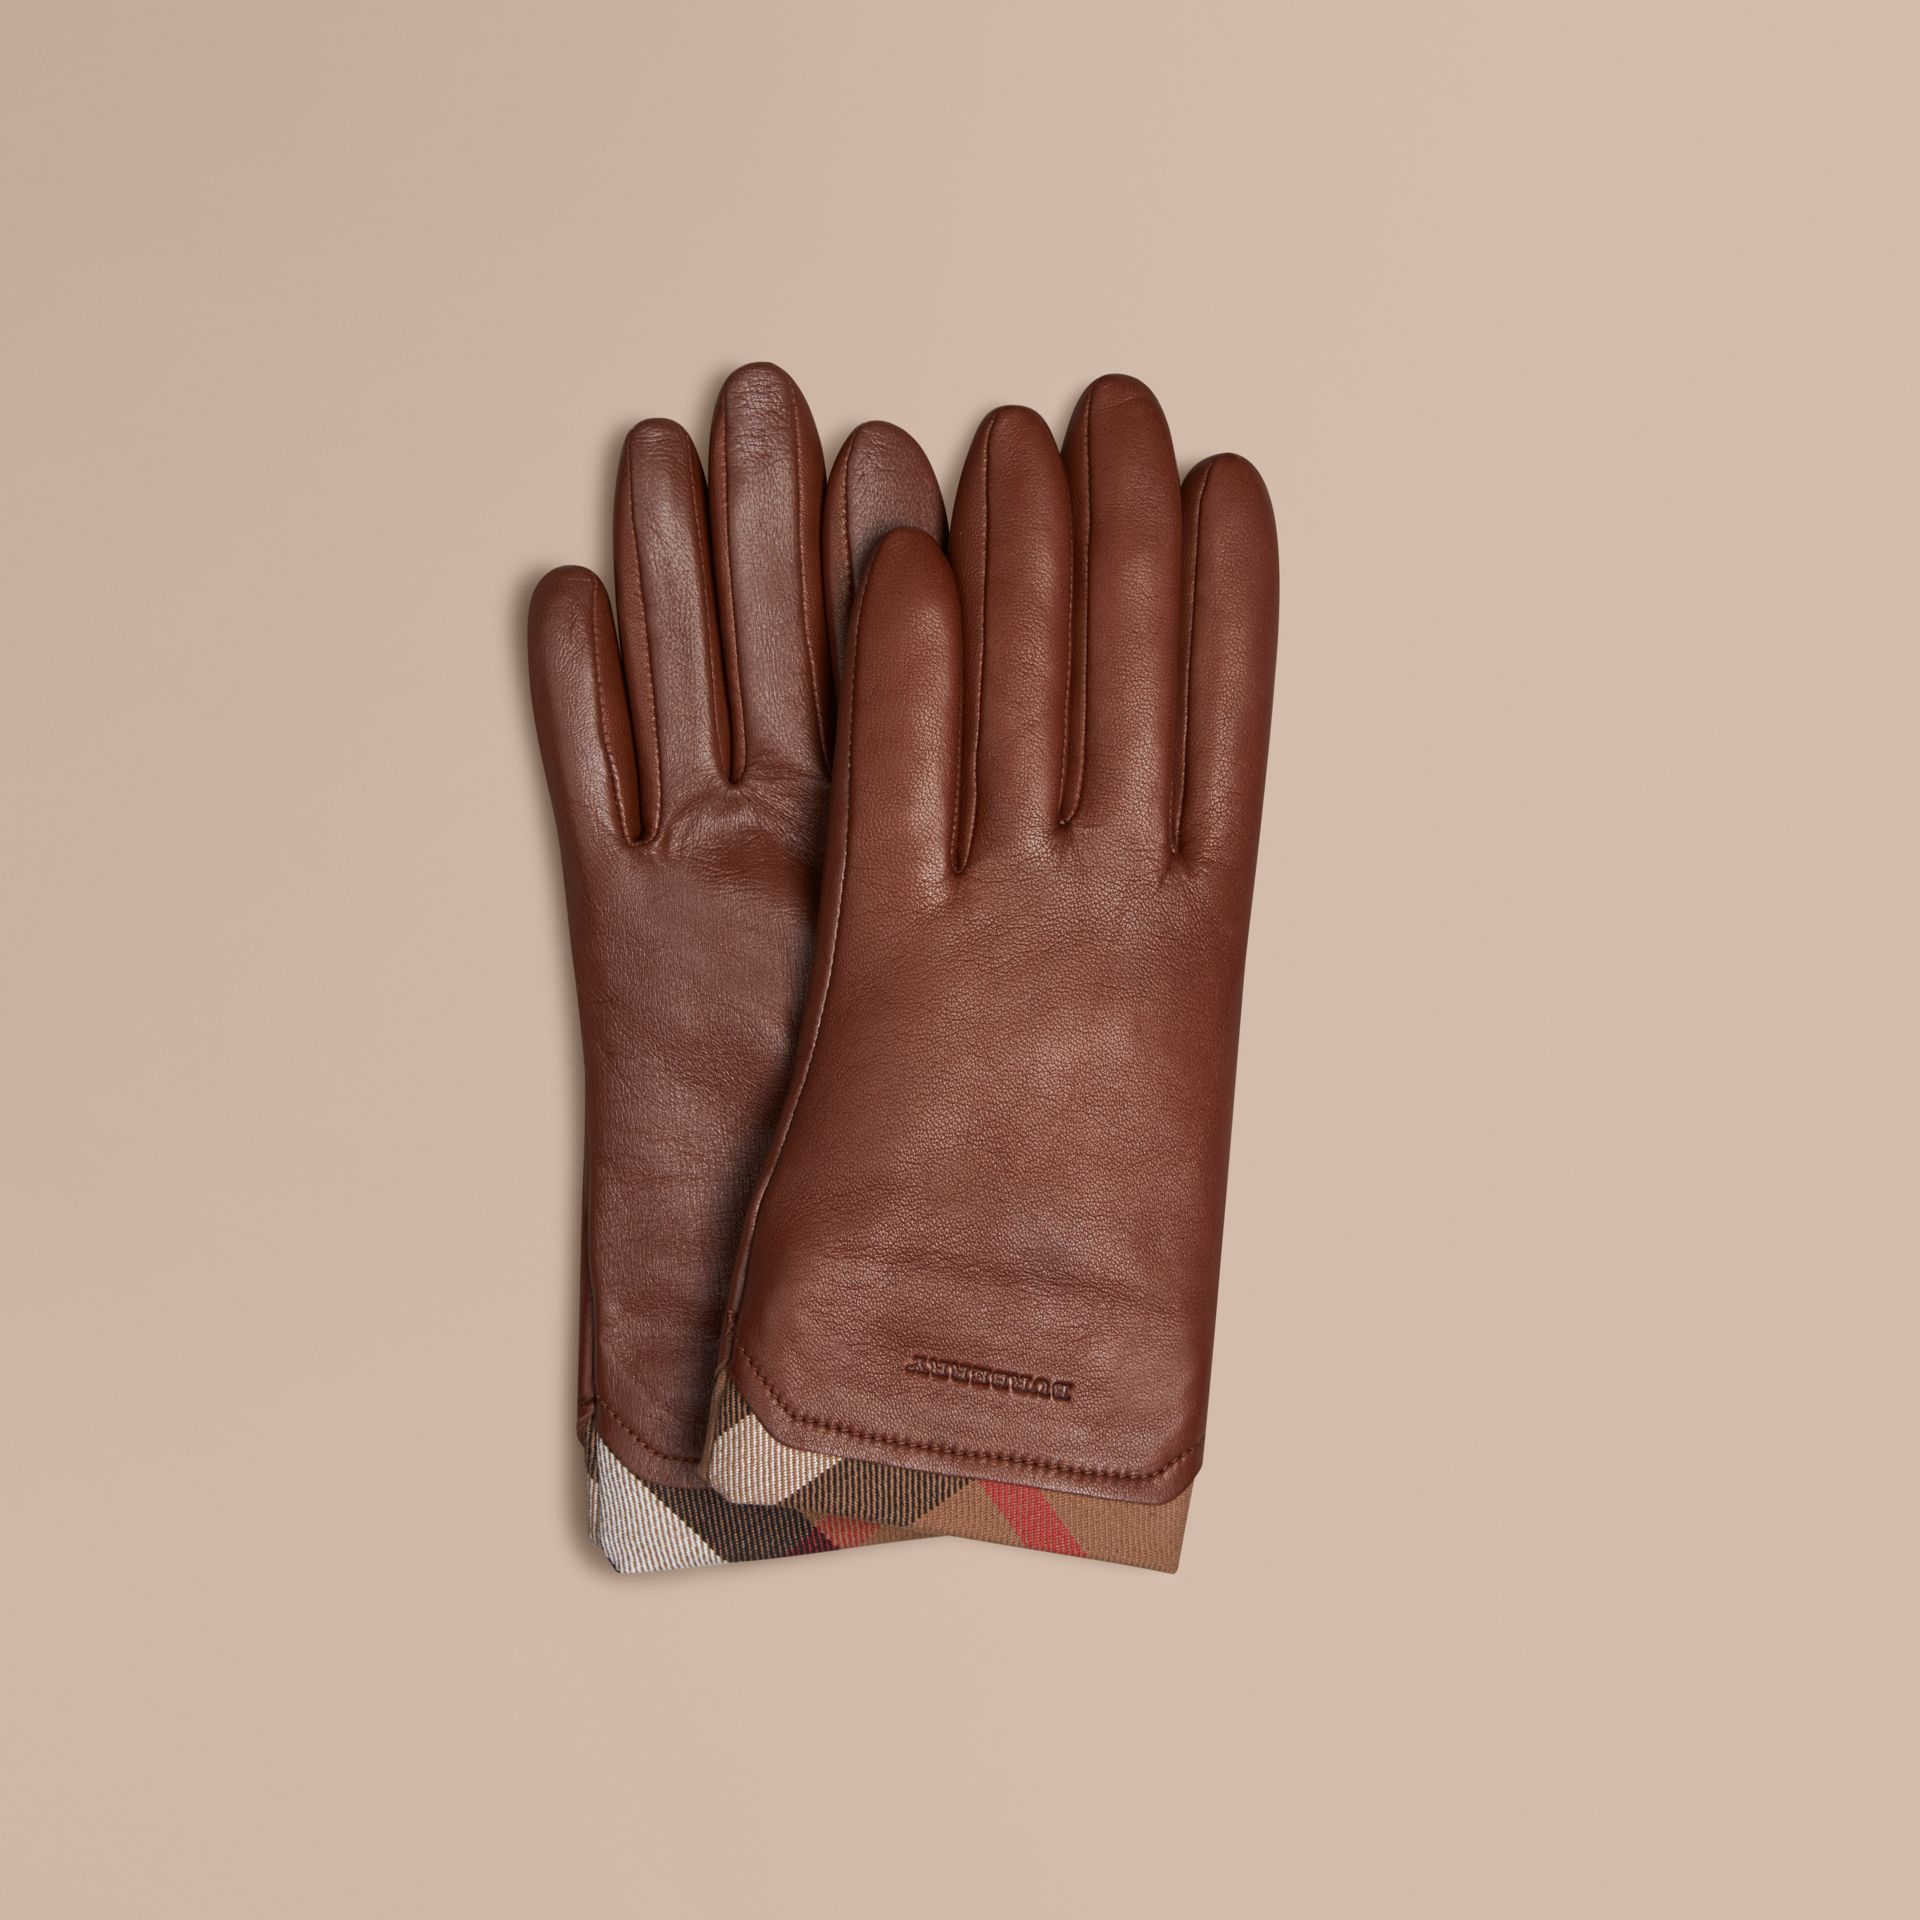 Saddle brown Check Trim Leather Gloves Saddle Brown - gallery image 1